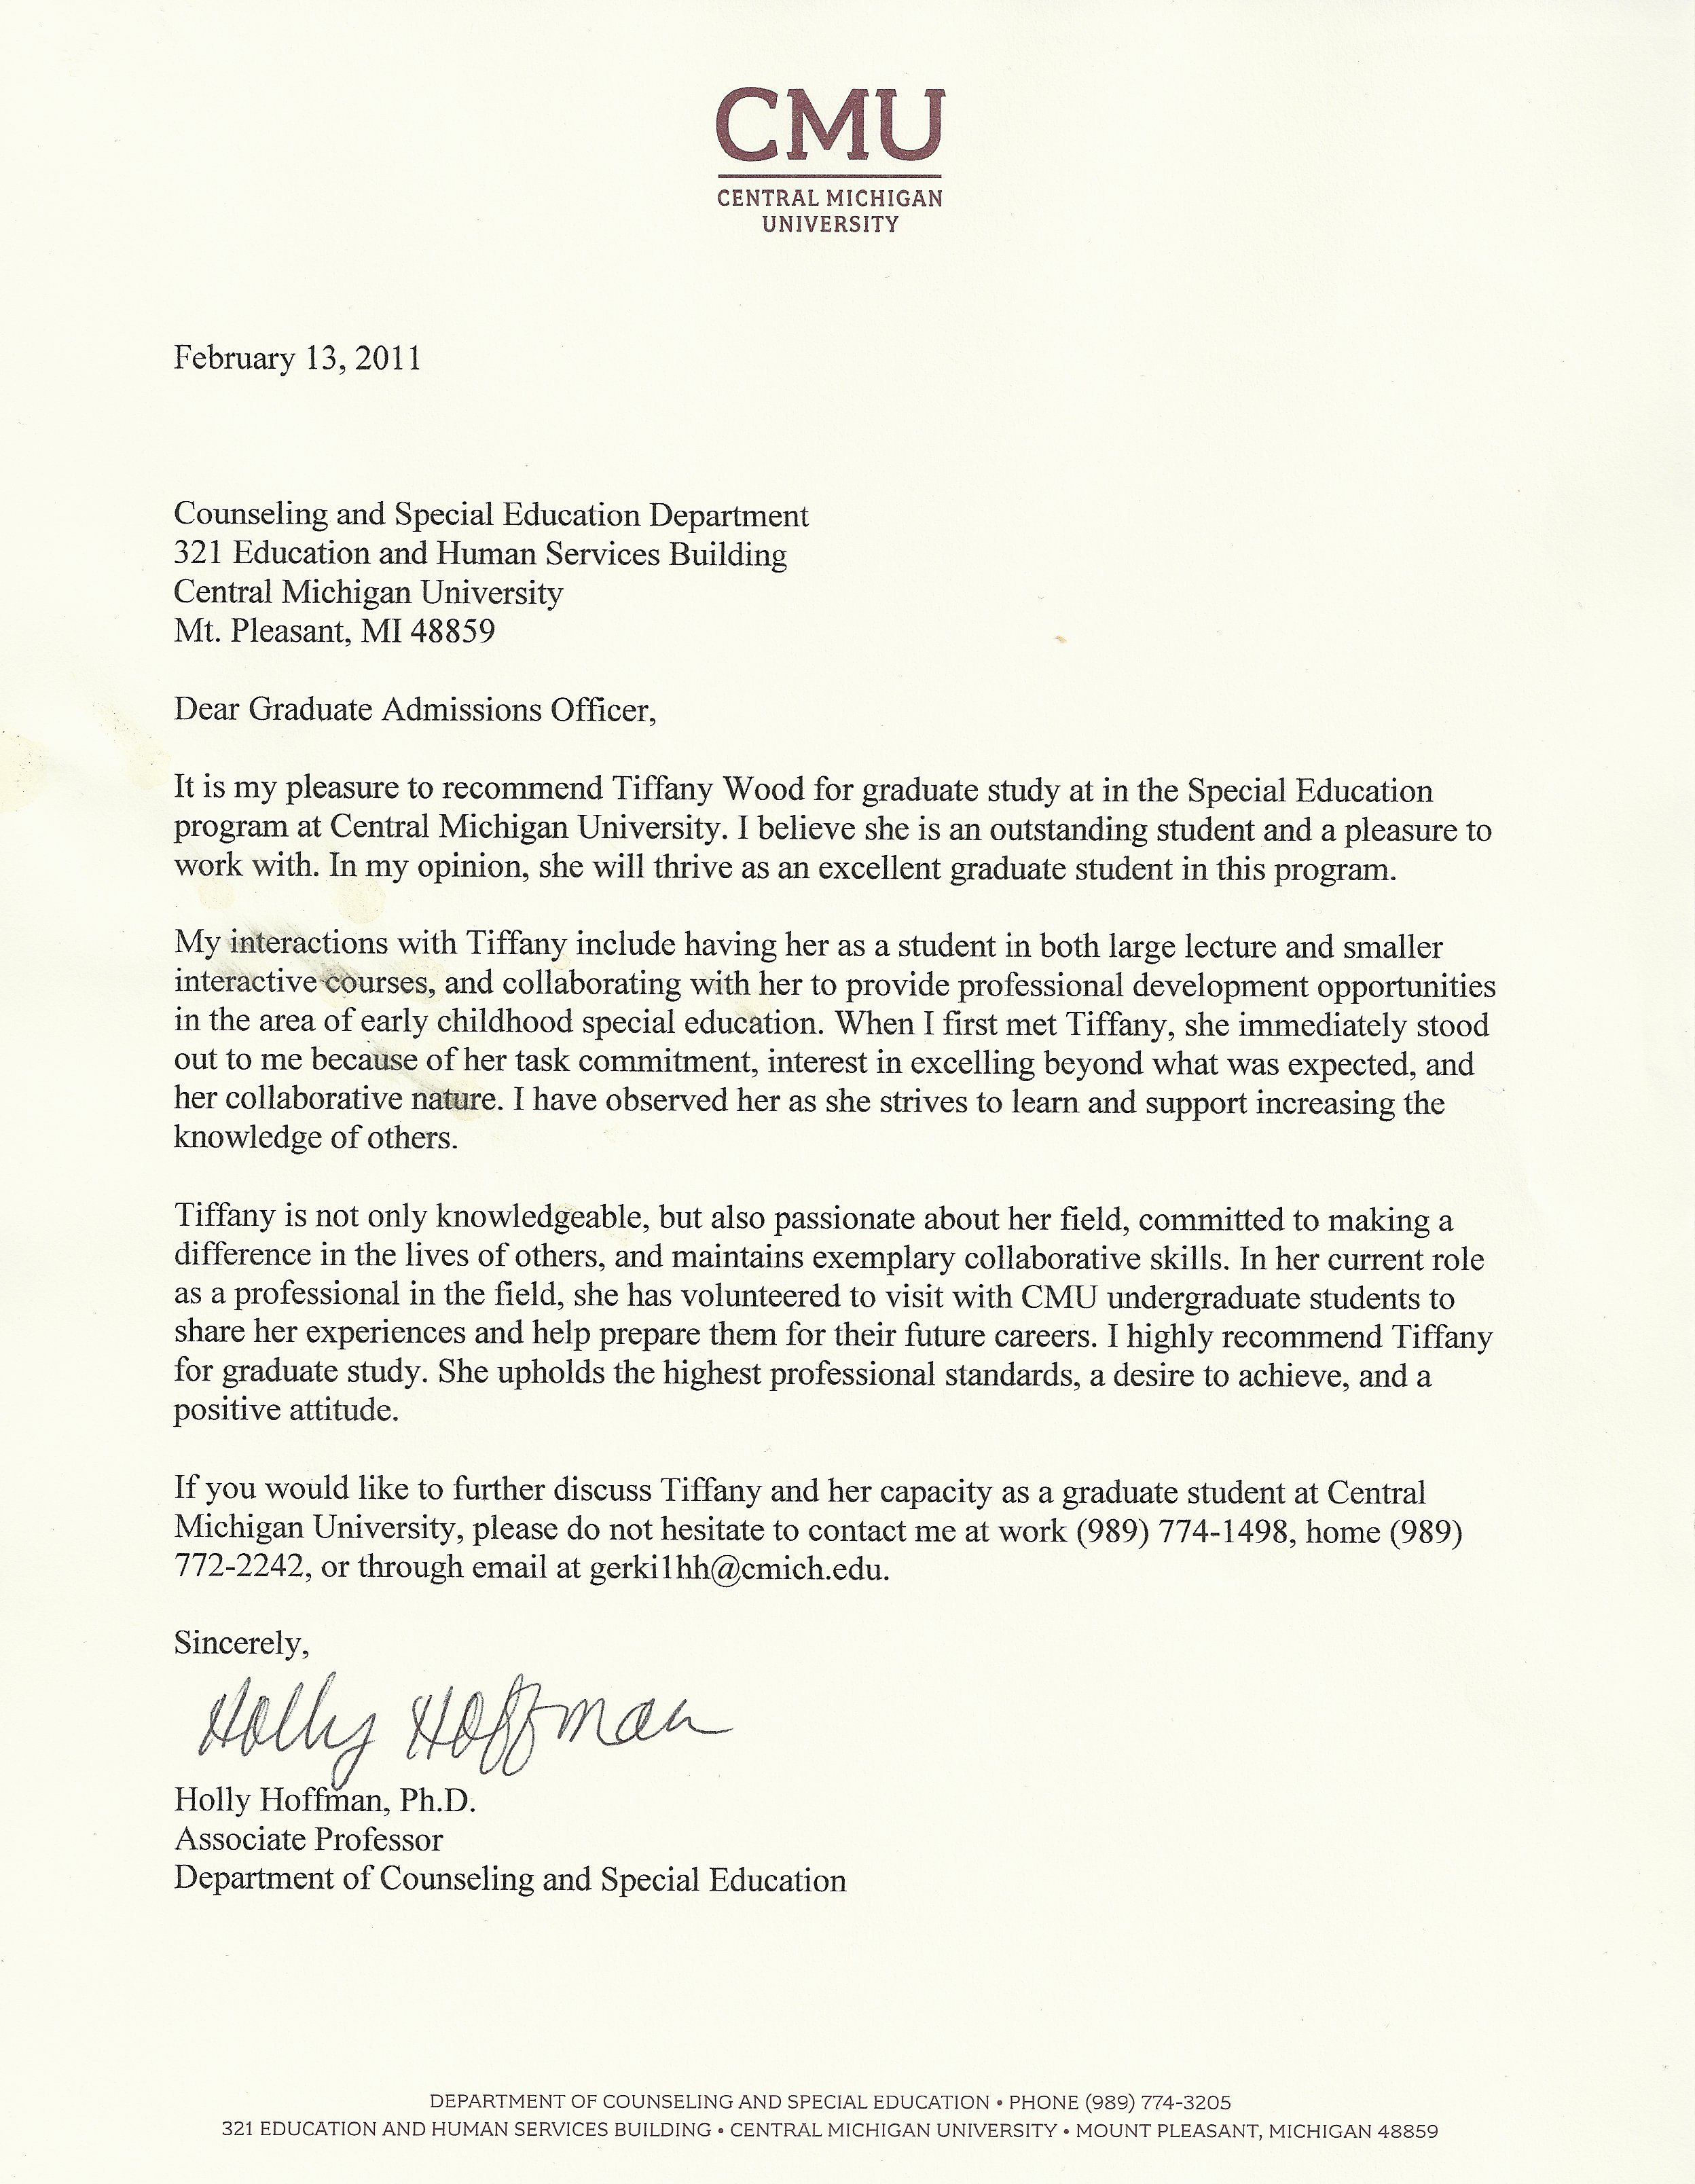 University of michigan letters of recommendation free professional online letters of reference university of michigan professor program evaluation letter of recommendation from university of michig program evaluation spiritdancerdesigns Image collections